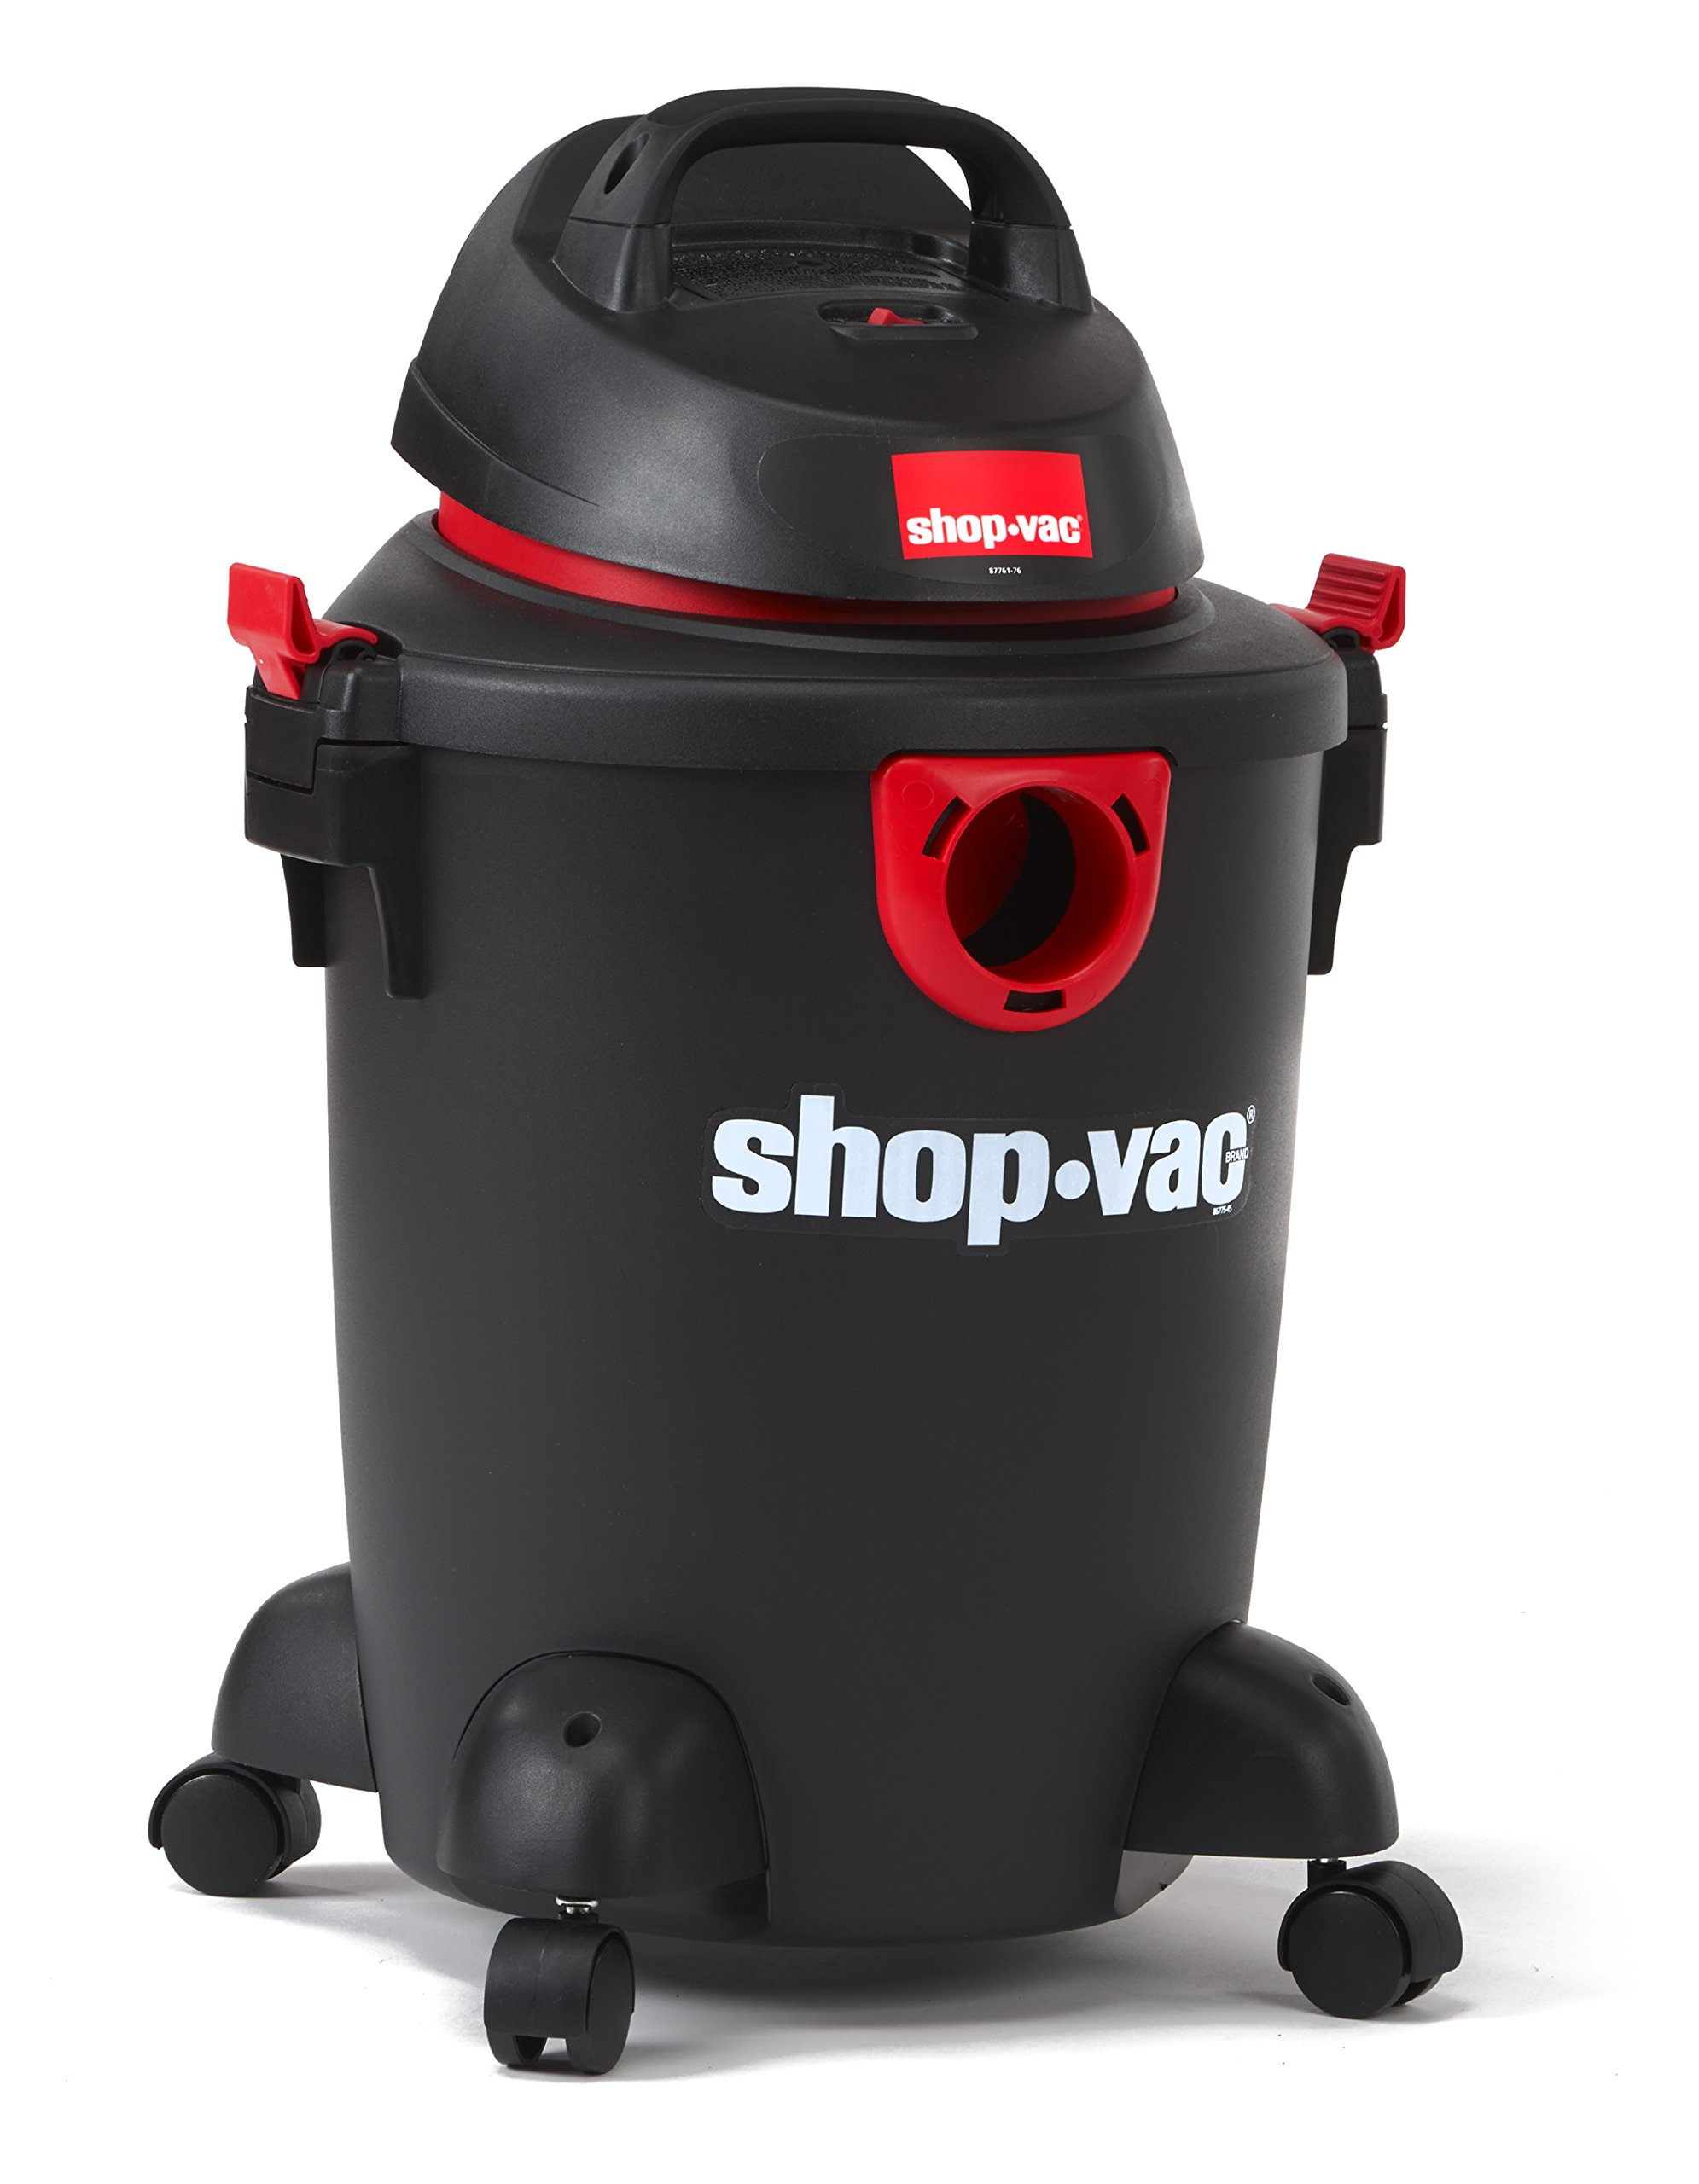 Shop-Vac 5985000 6 gallon 3.0 Peak HP Classic Wet Dry Vacuum, Black/Red